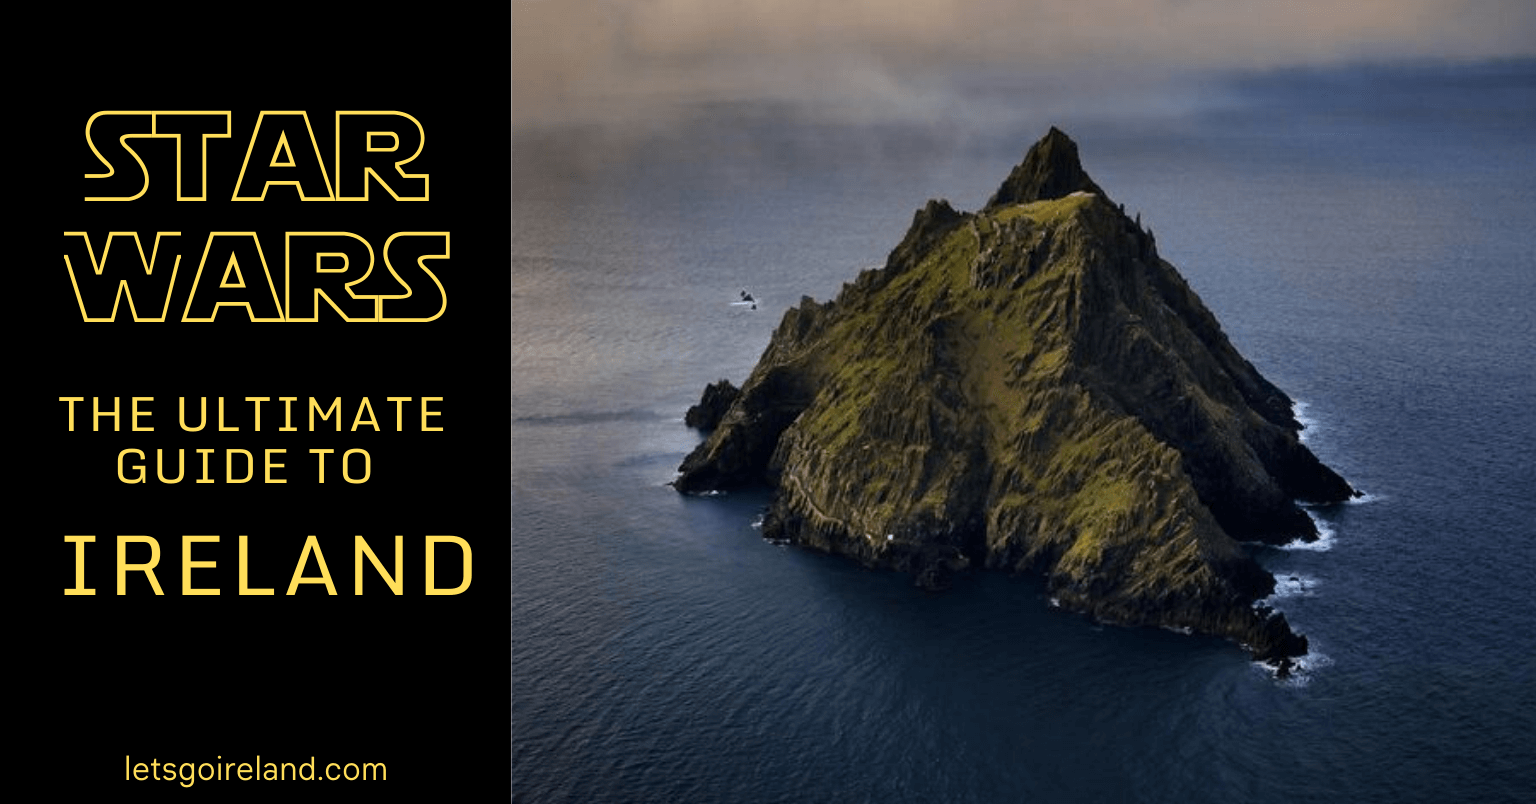 The Ultimate Ireland Star Wars Locations Guide